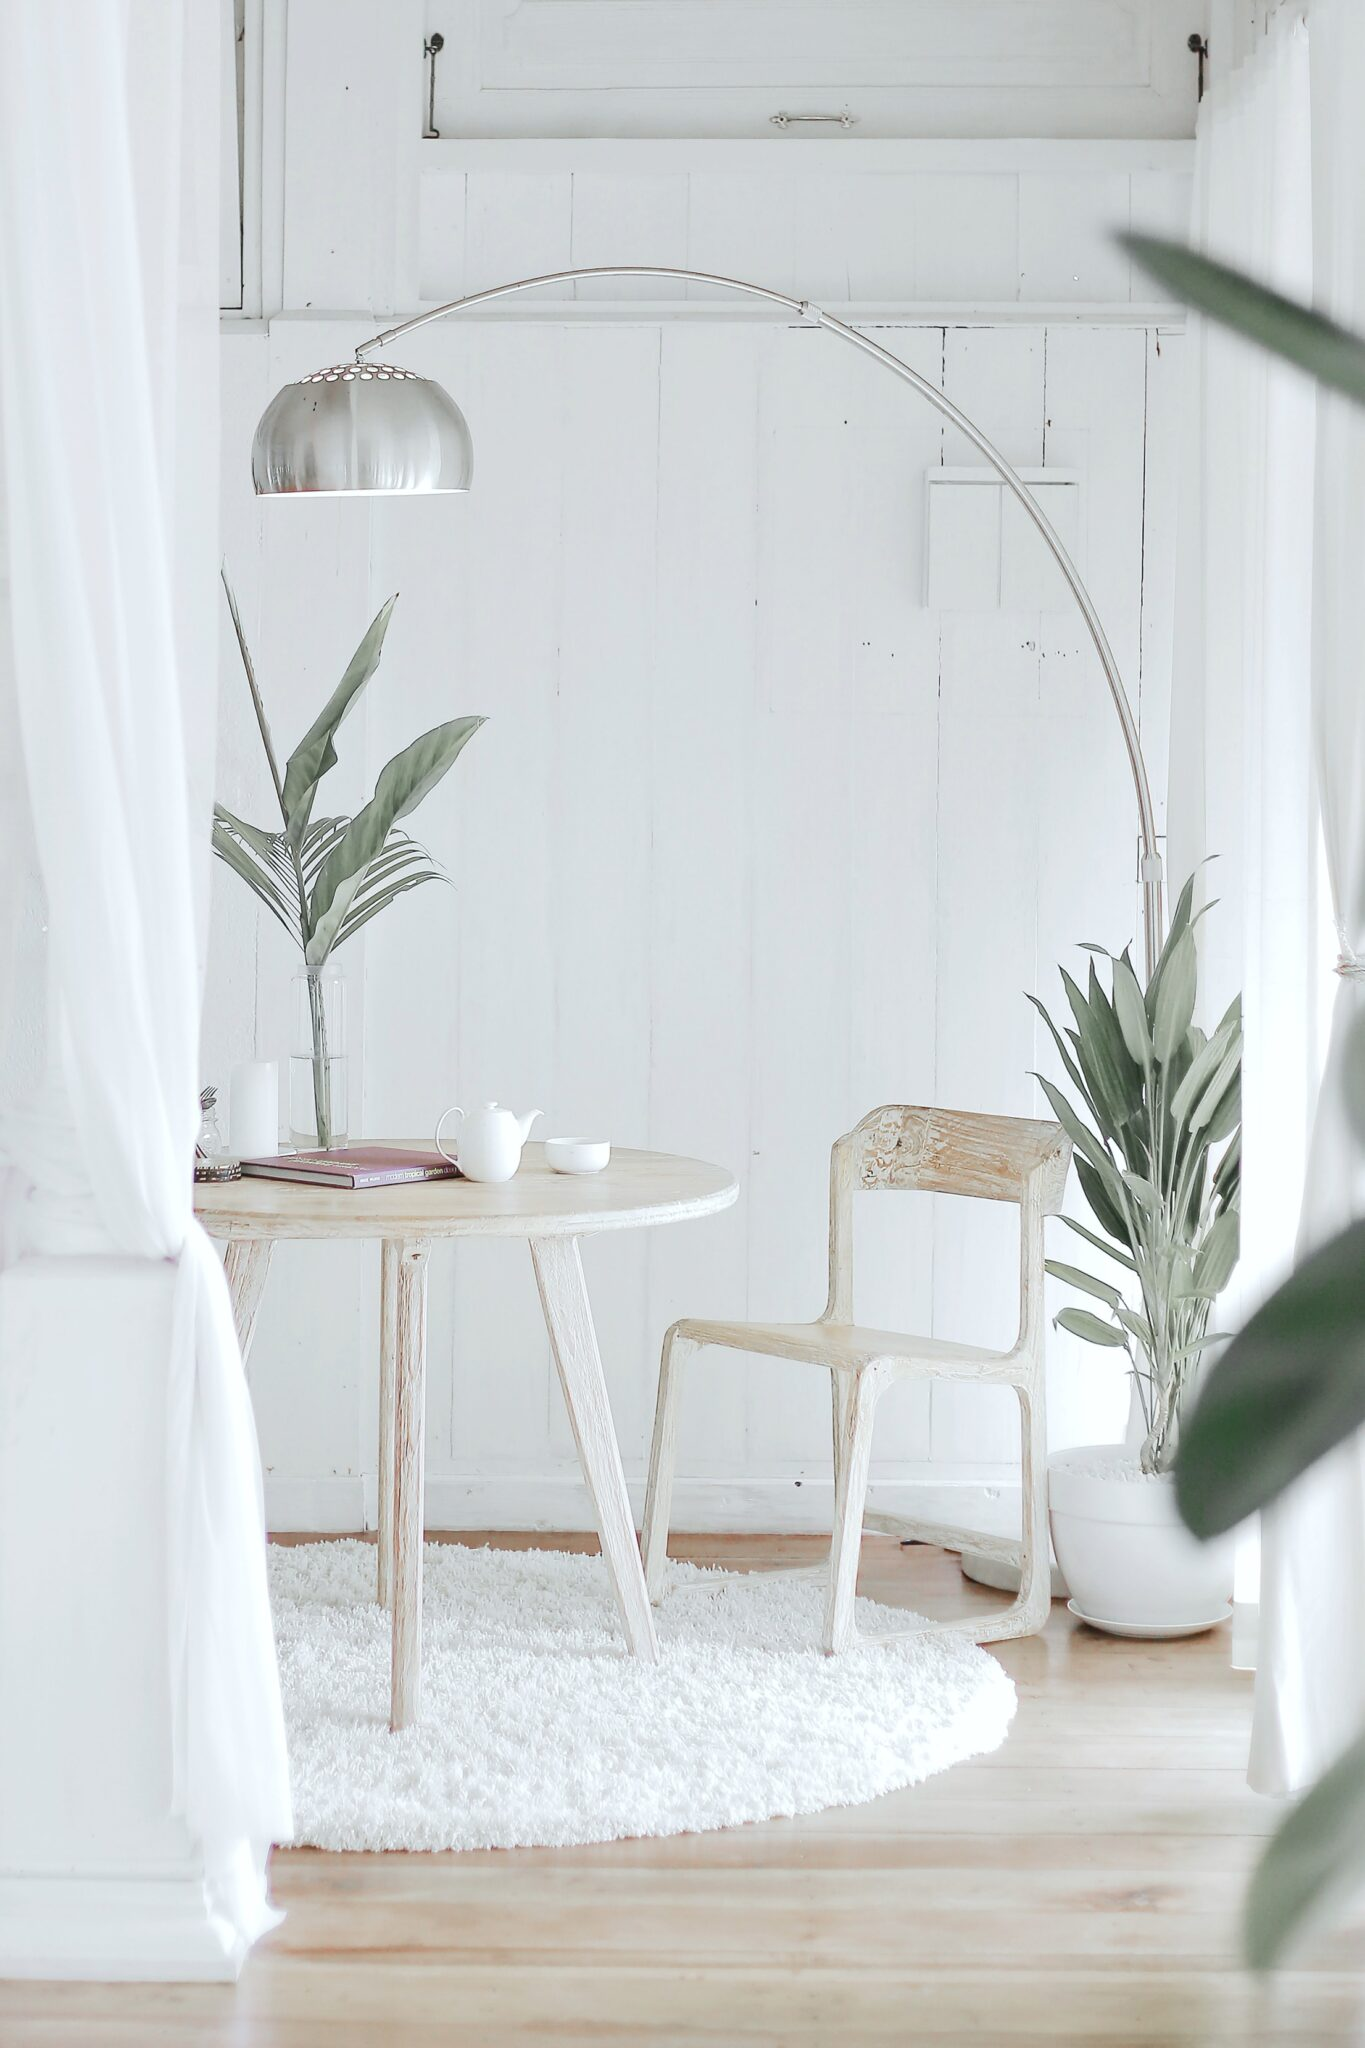 A white room with a table and chair, acting as a home office. There is a lamp that hangs over it.